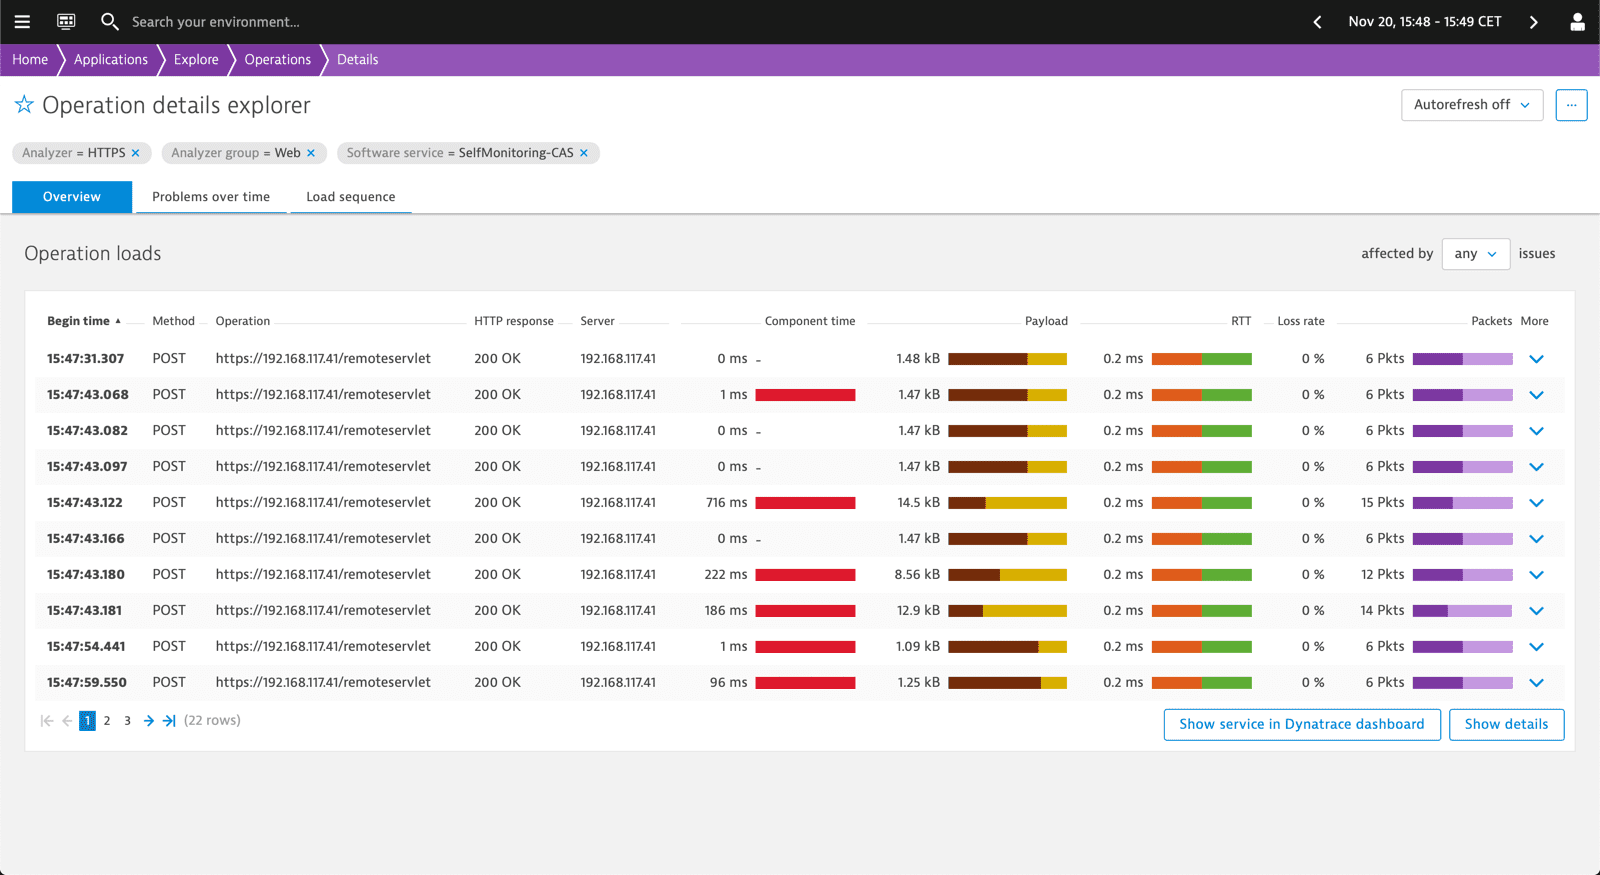 Operation details explorer: link to Dynatrace dashboard